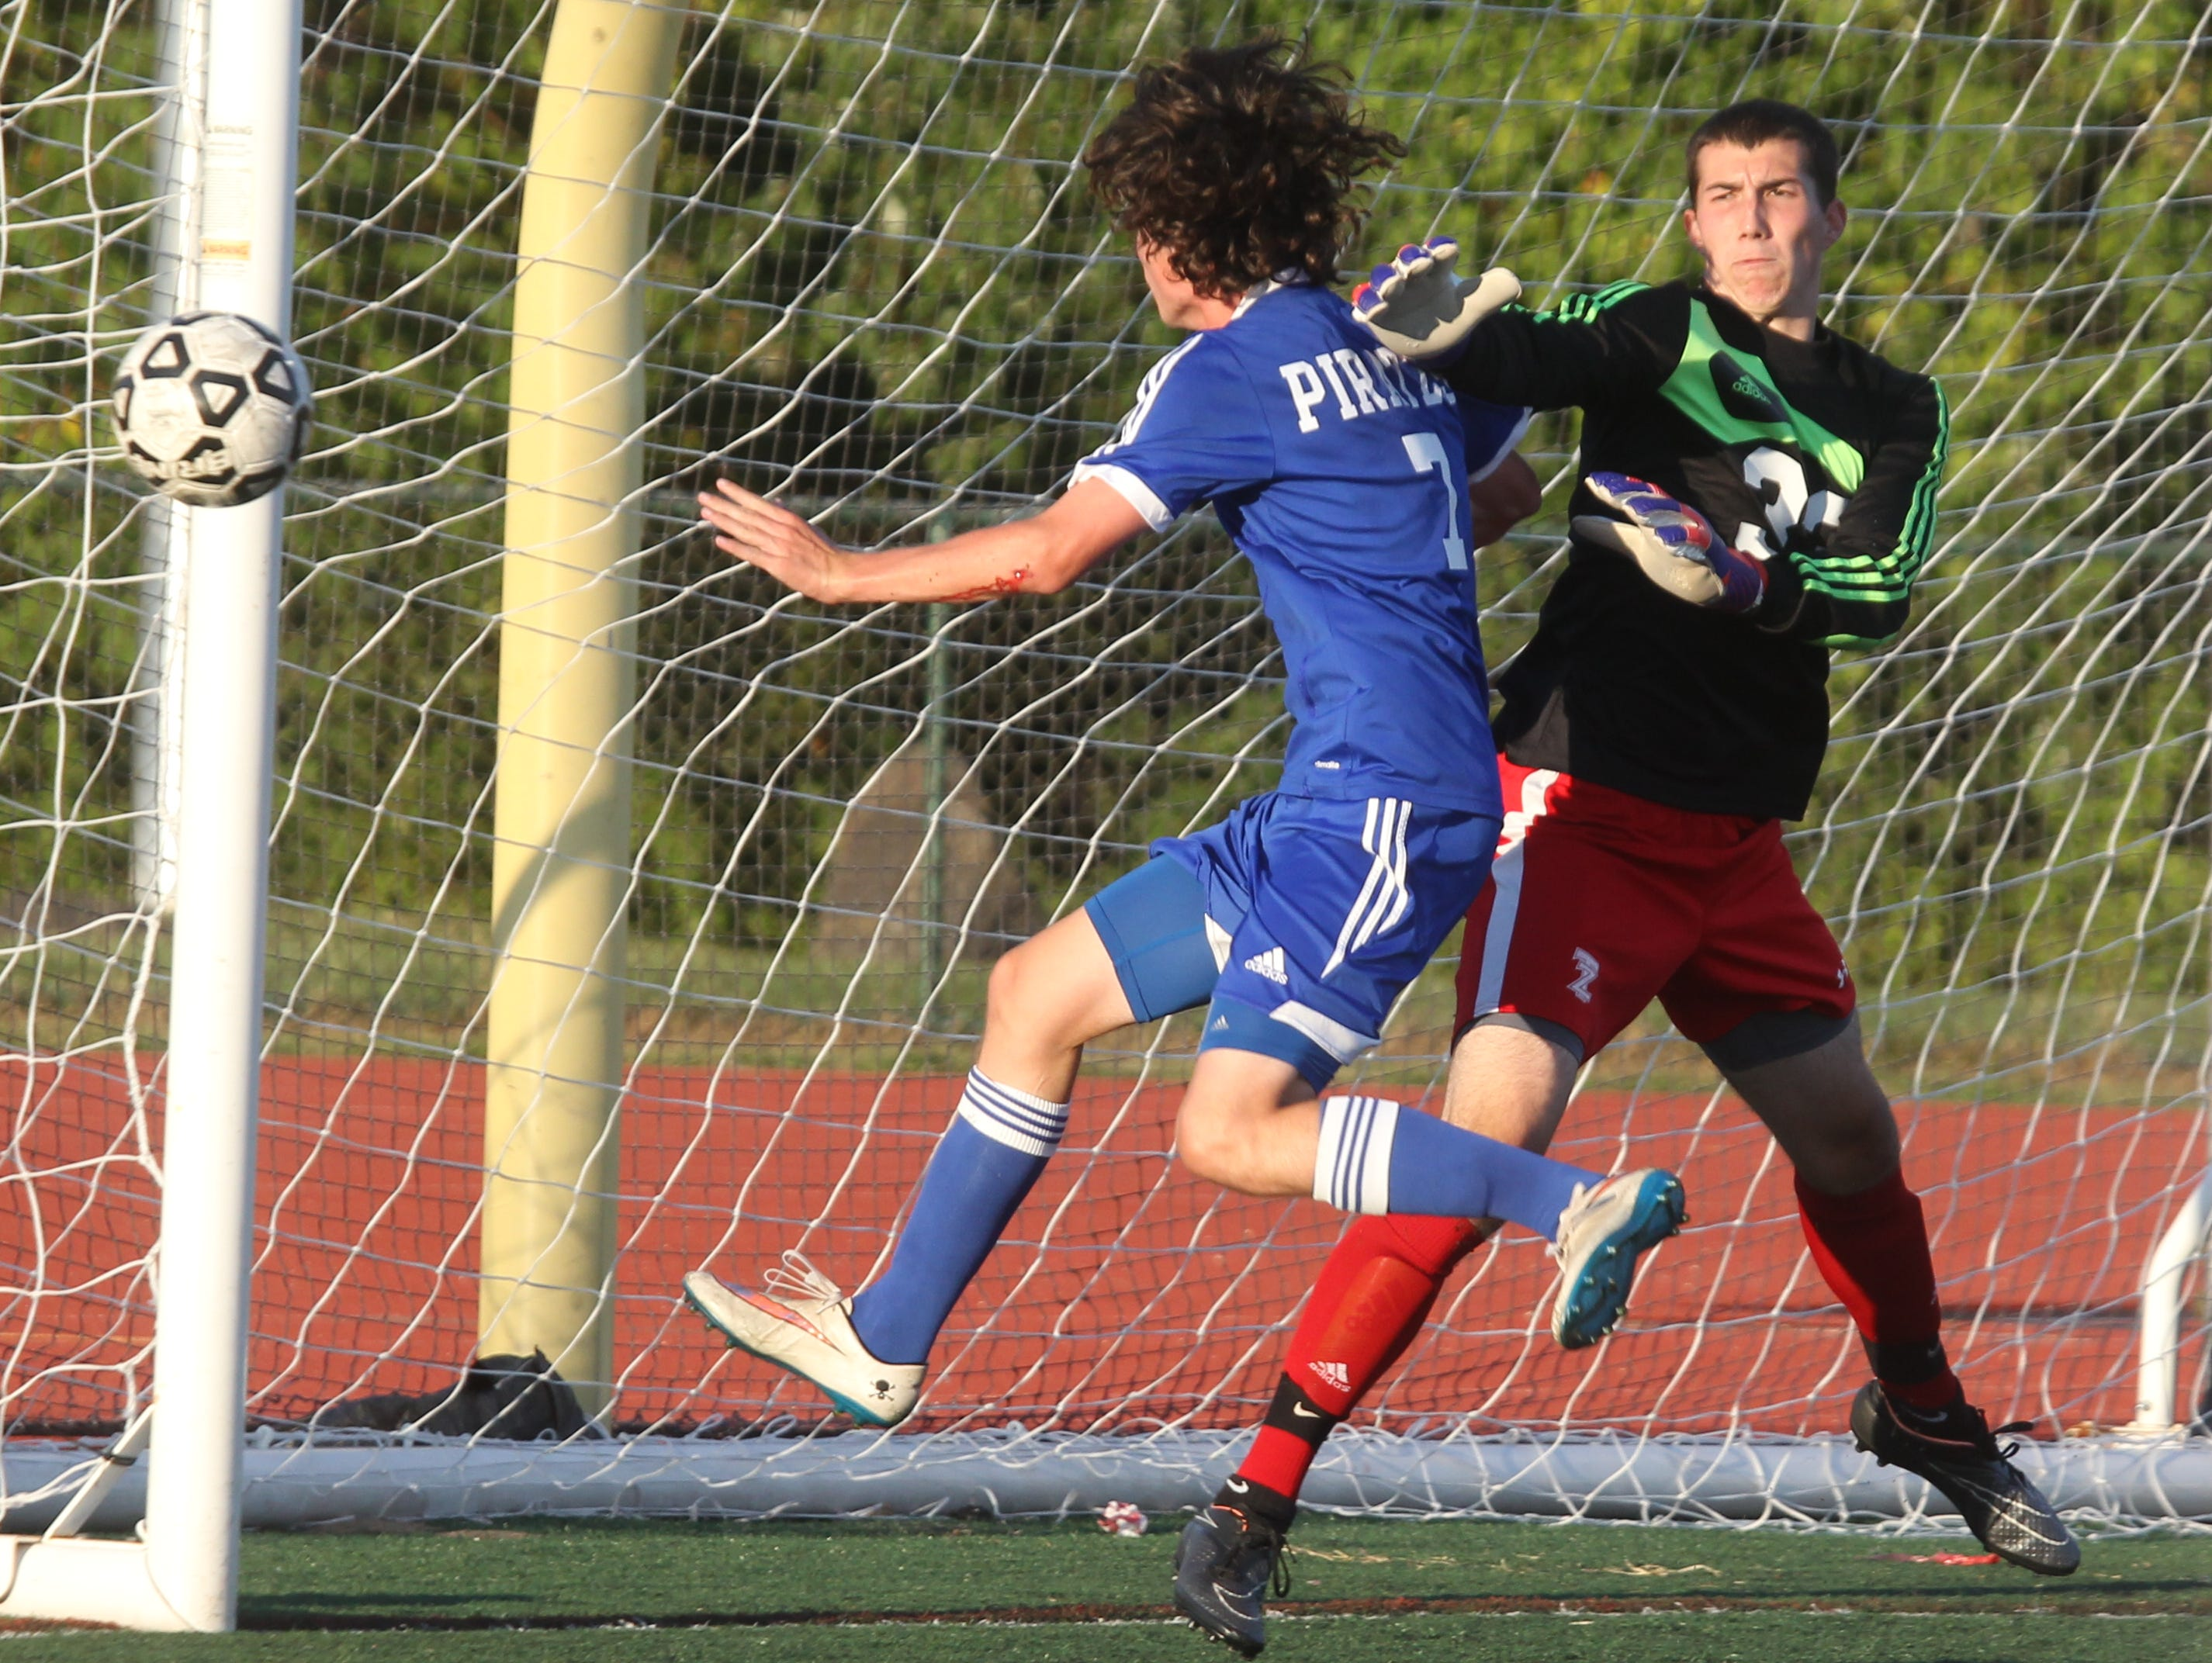 Pearl River's Brian Flaherty heads the ball wide of the net and Tappan Zee goalie John Connor during a game at Tappan Zee Sept. 24, 2015. Pearl River won1-0.